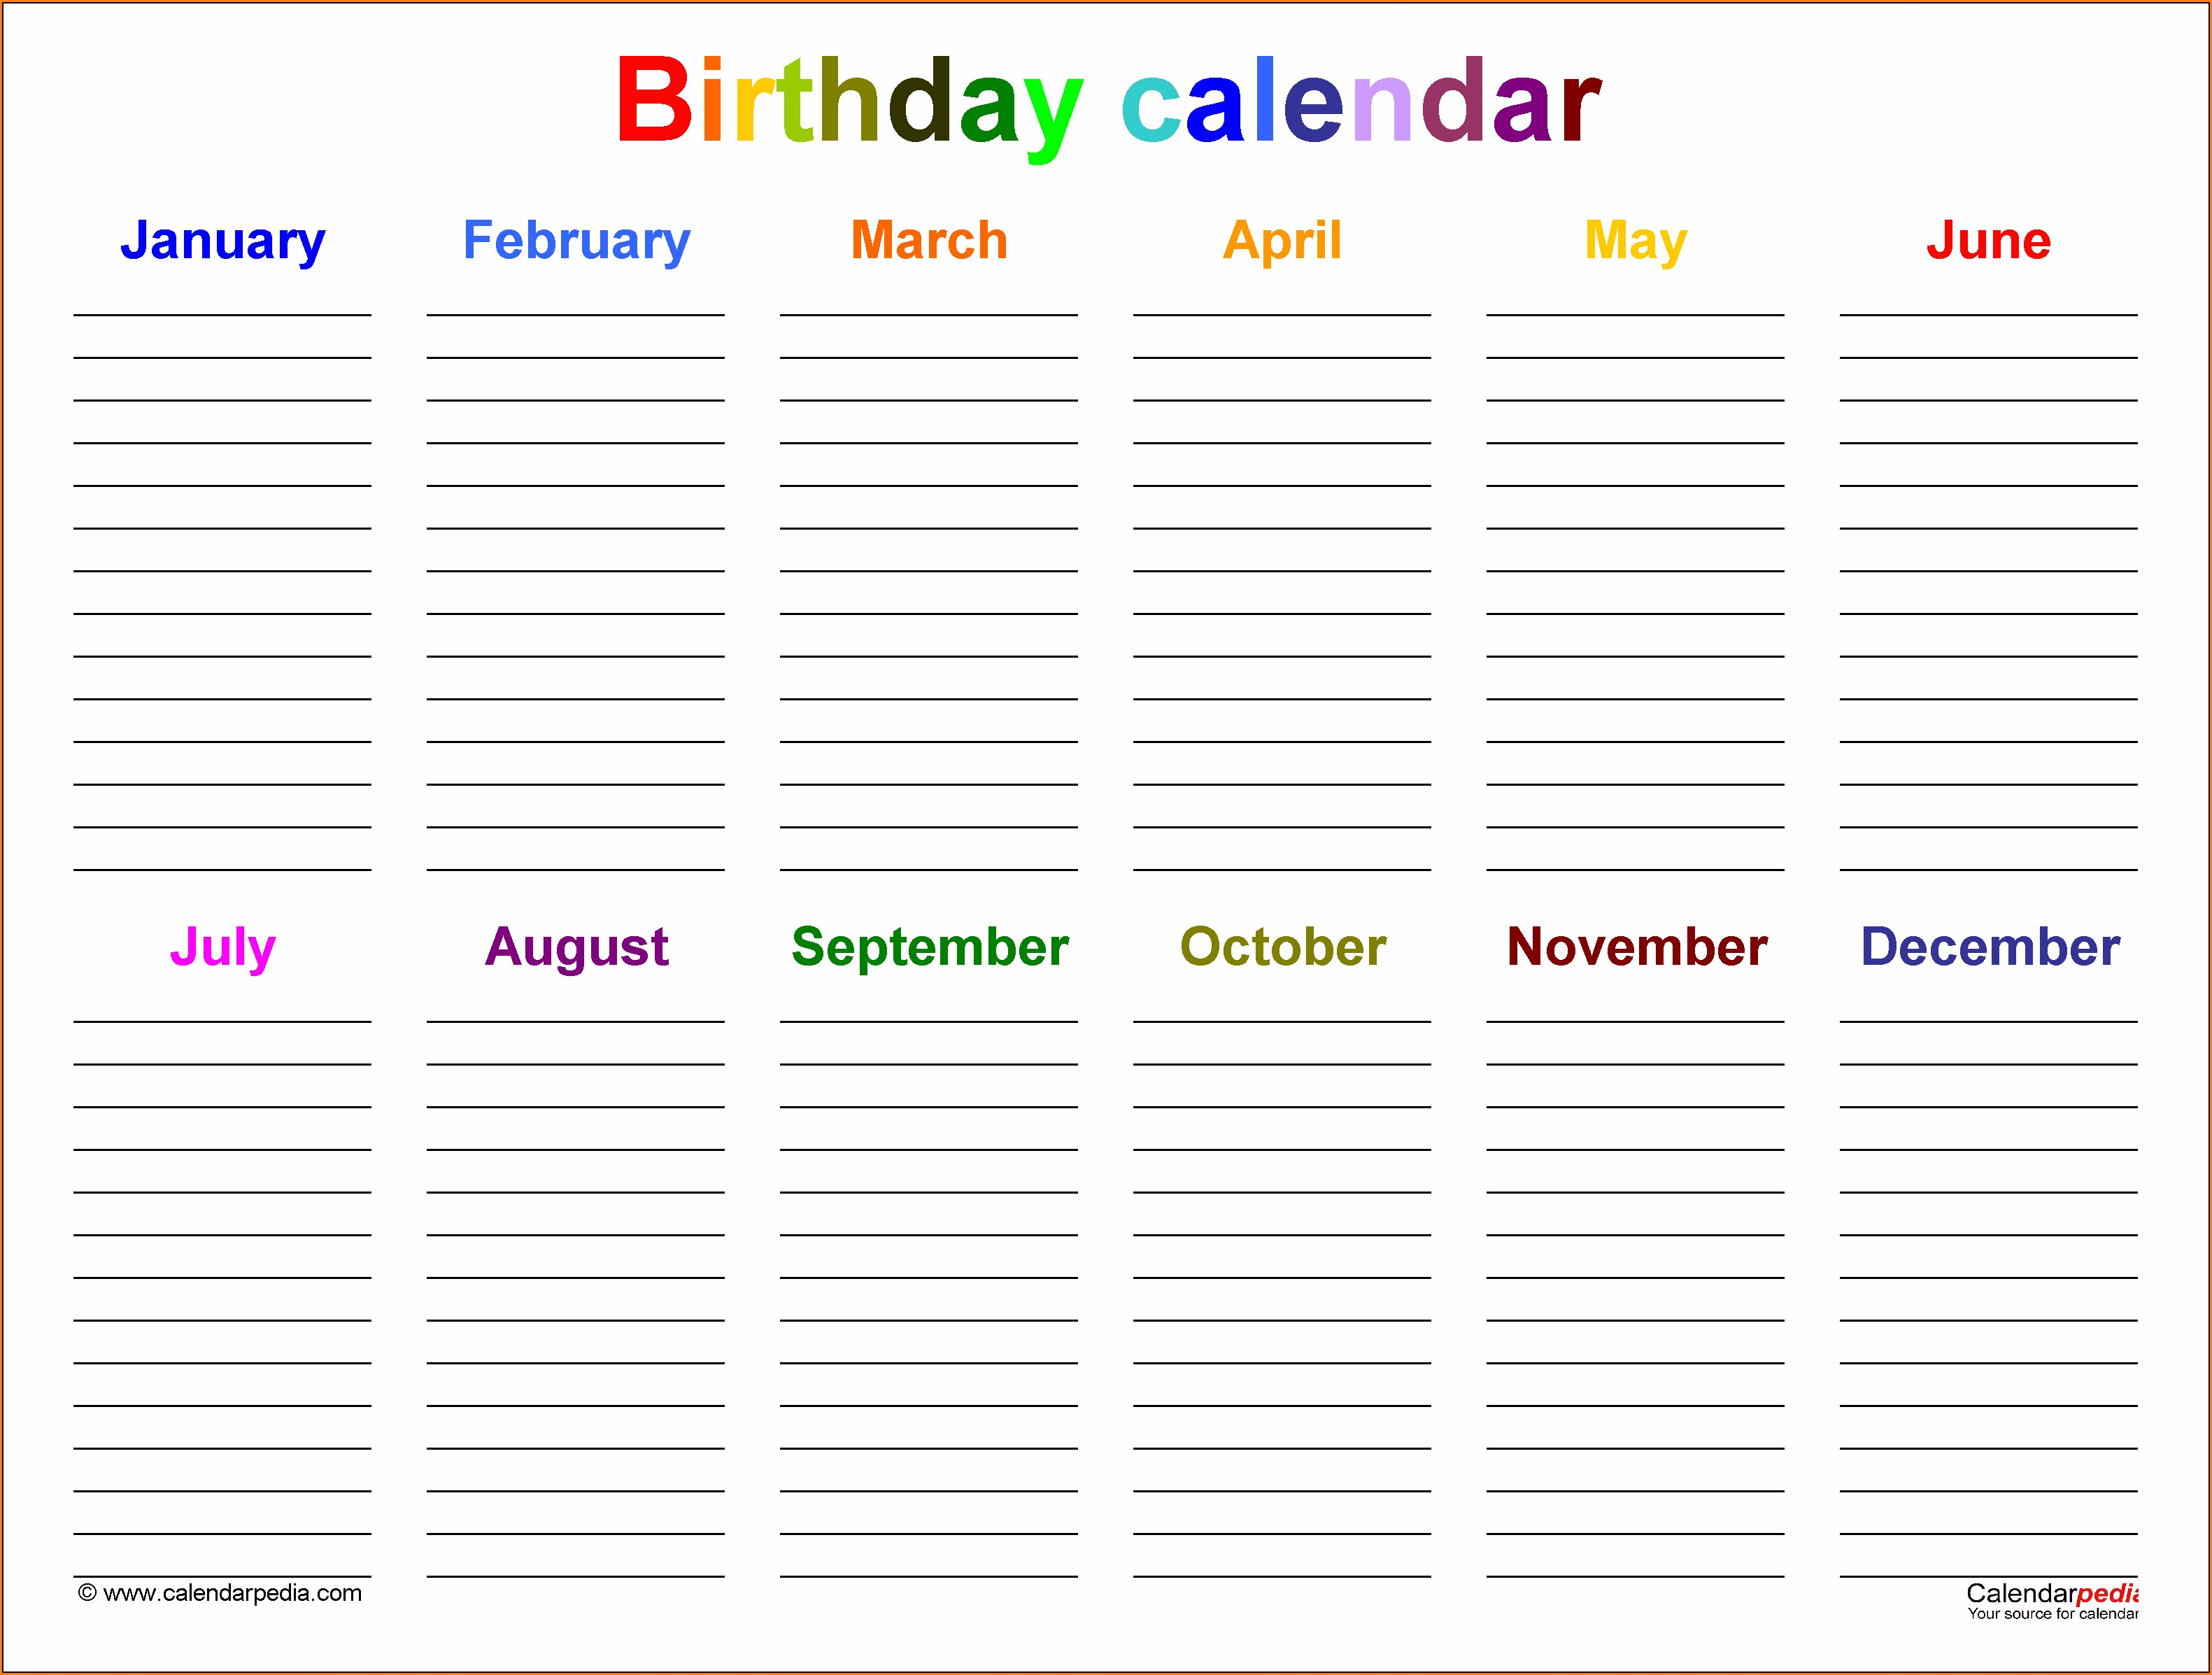 Yearly Birthday Calendar Template Free